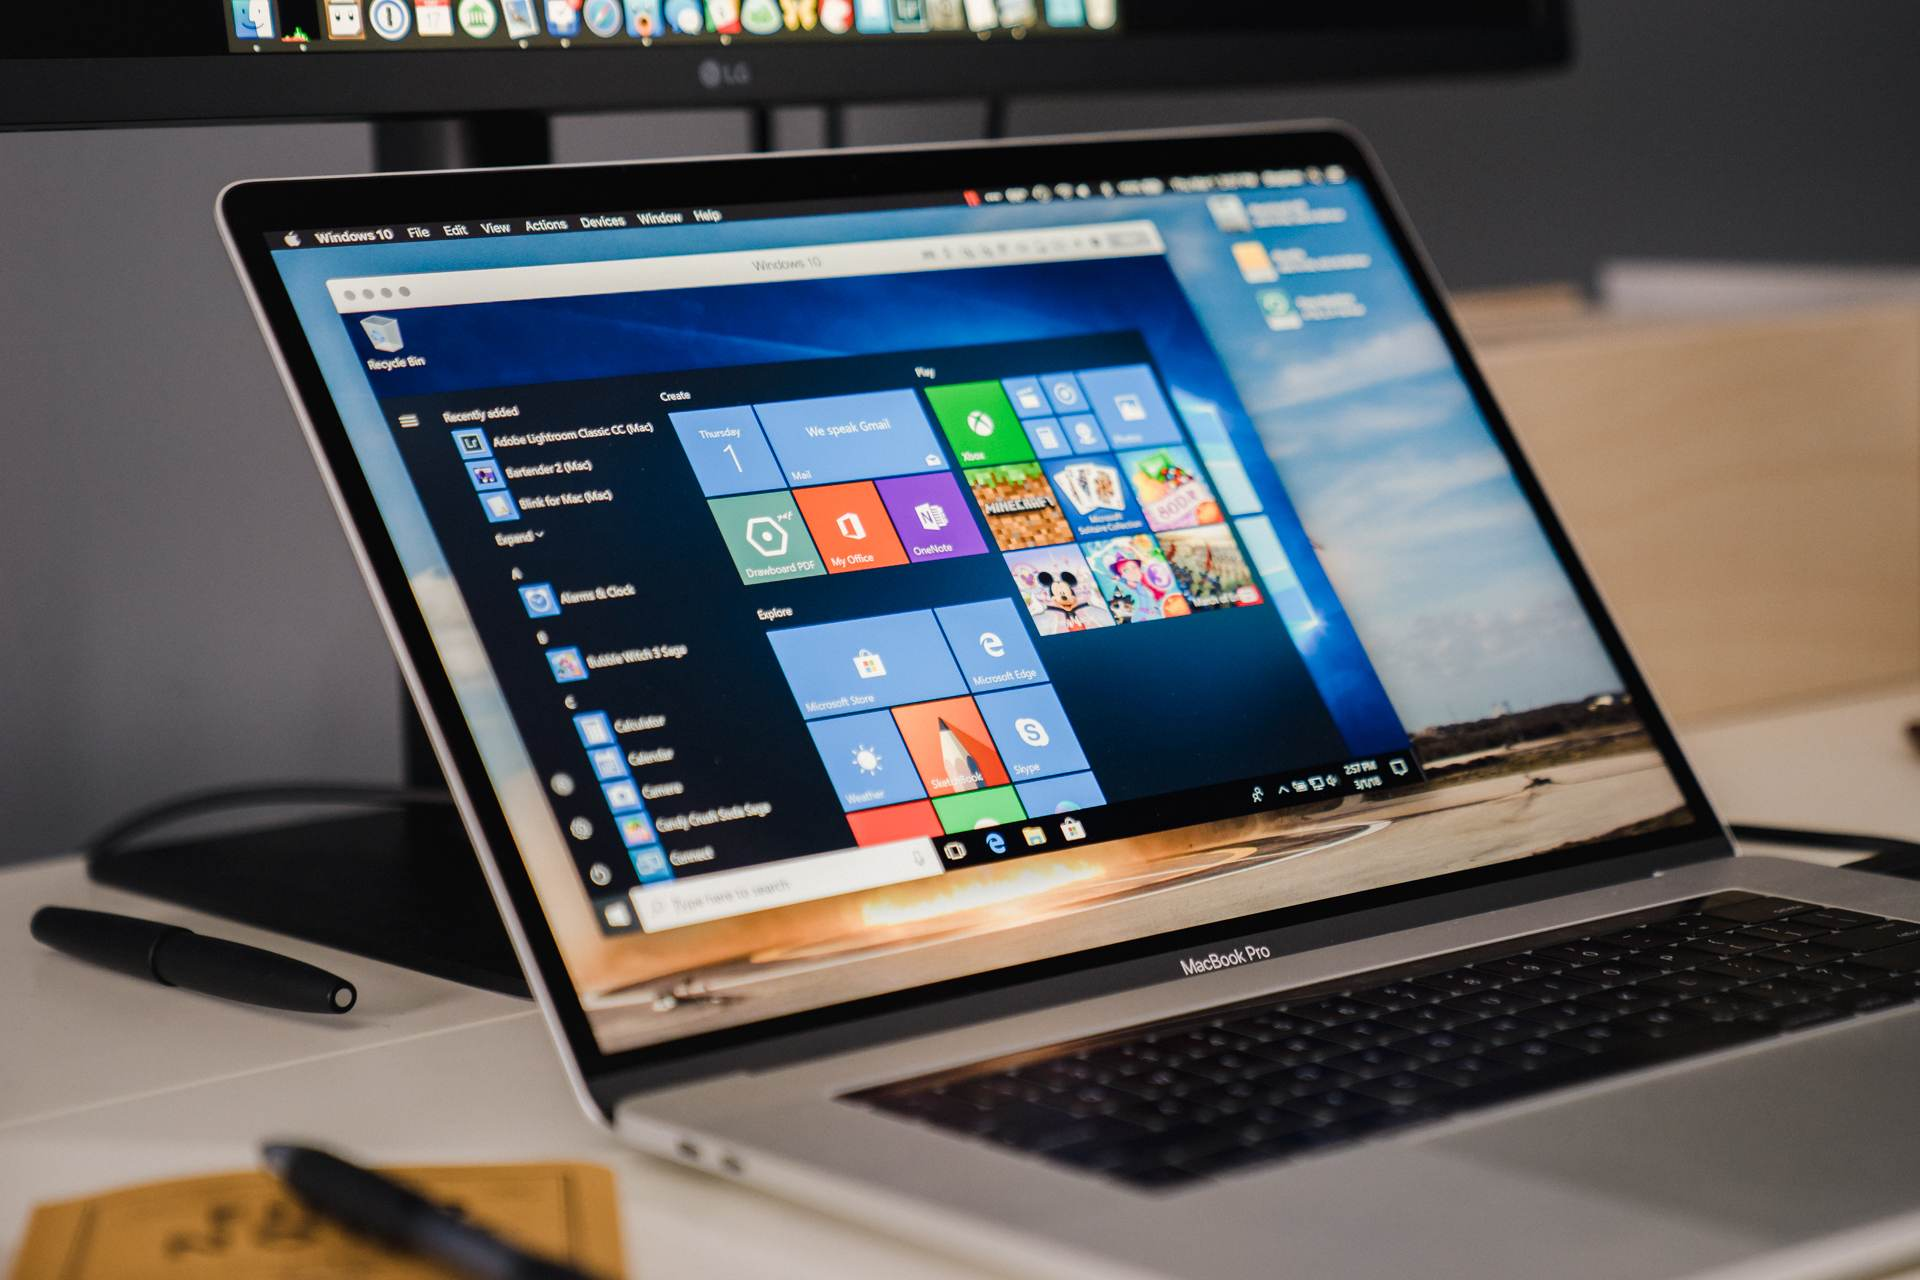 The best app for running Windows on a Mac